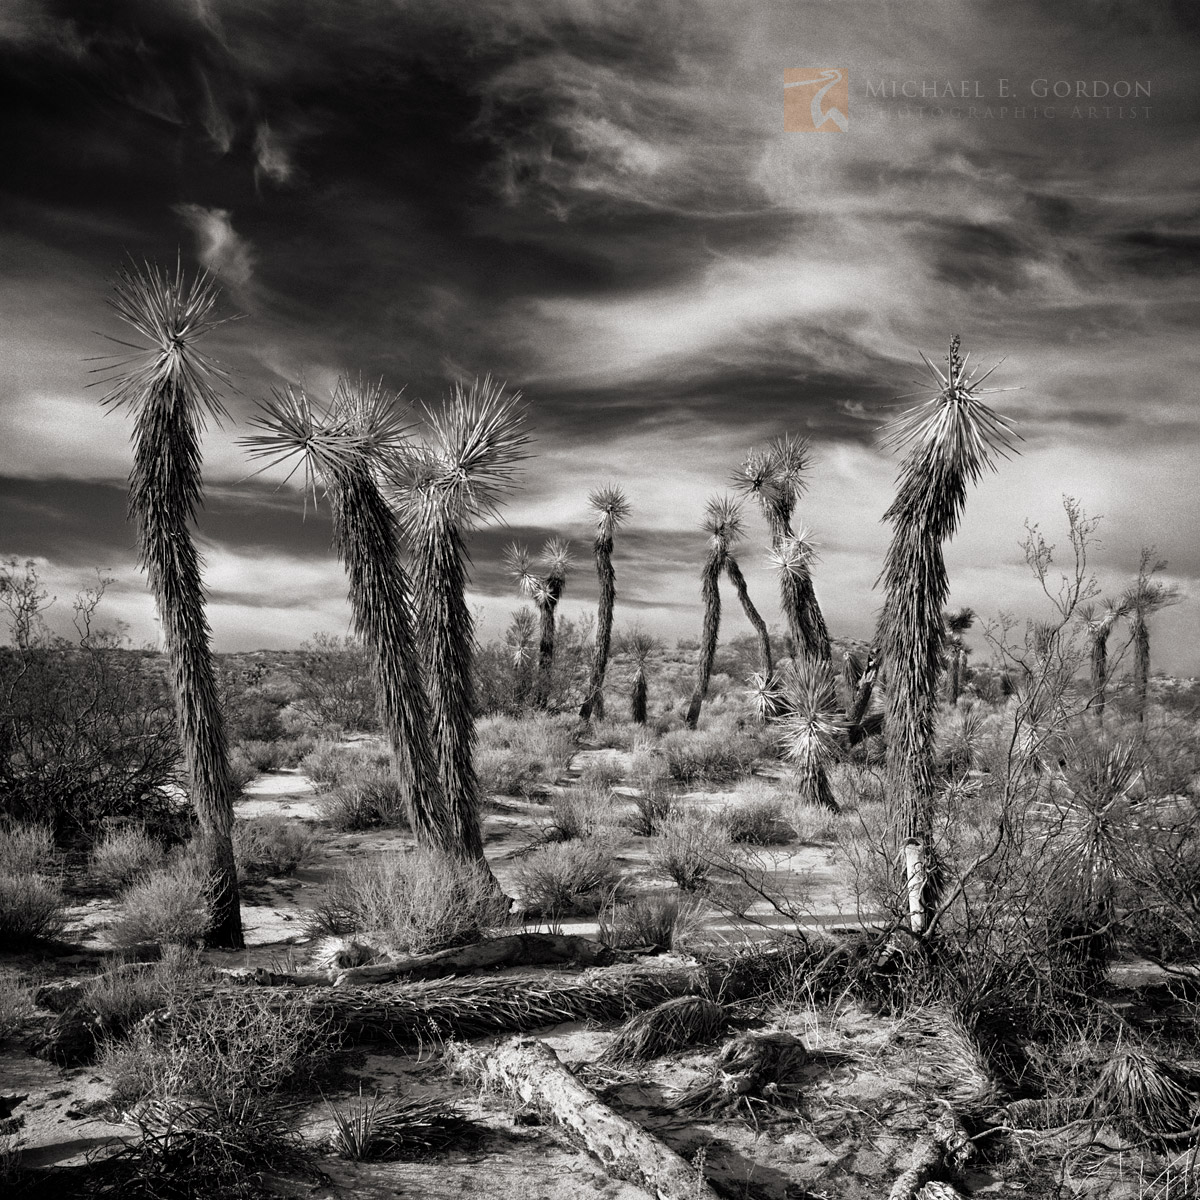 Joshua trees, Yucca brevifolia, unusual, Mojave desert, clouds, sky, cirrus, Indian Summer, photo